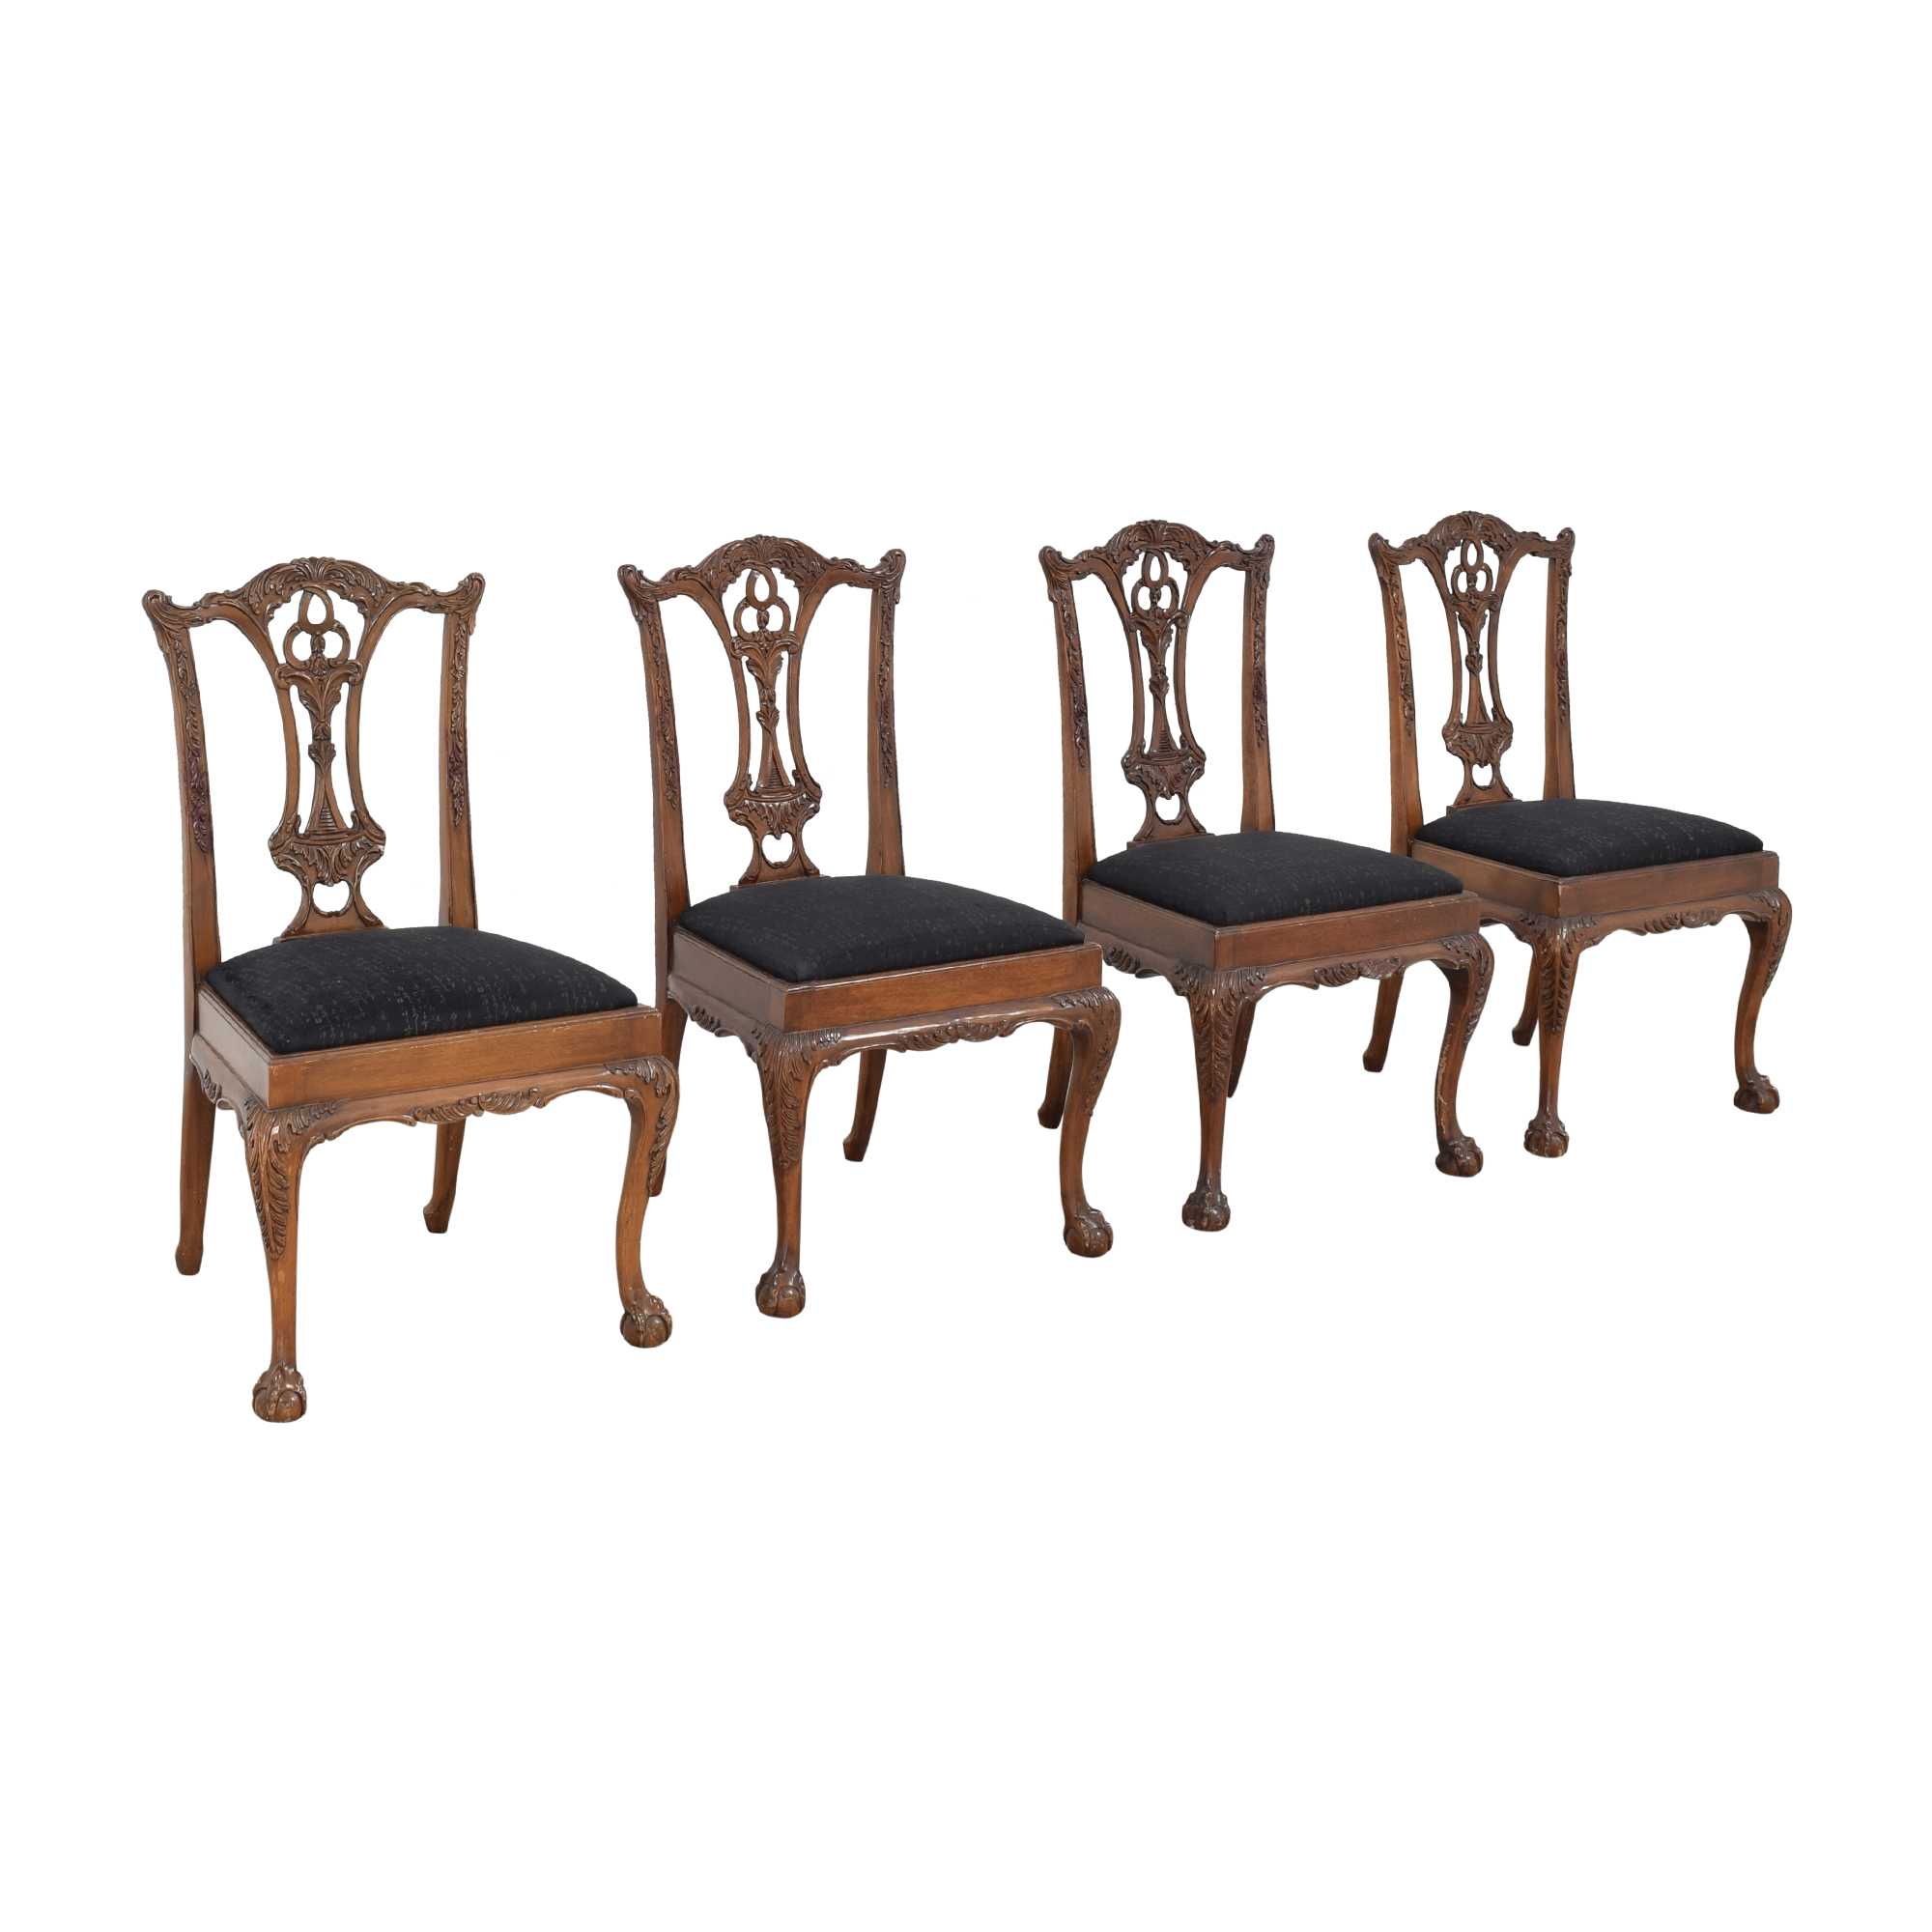 Maitland-Smith Maitland-Smith Carved Chippendale Style Dining Chairs for sale